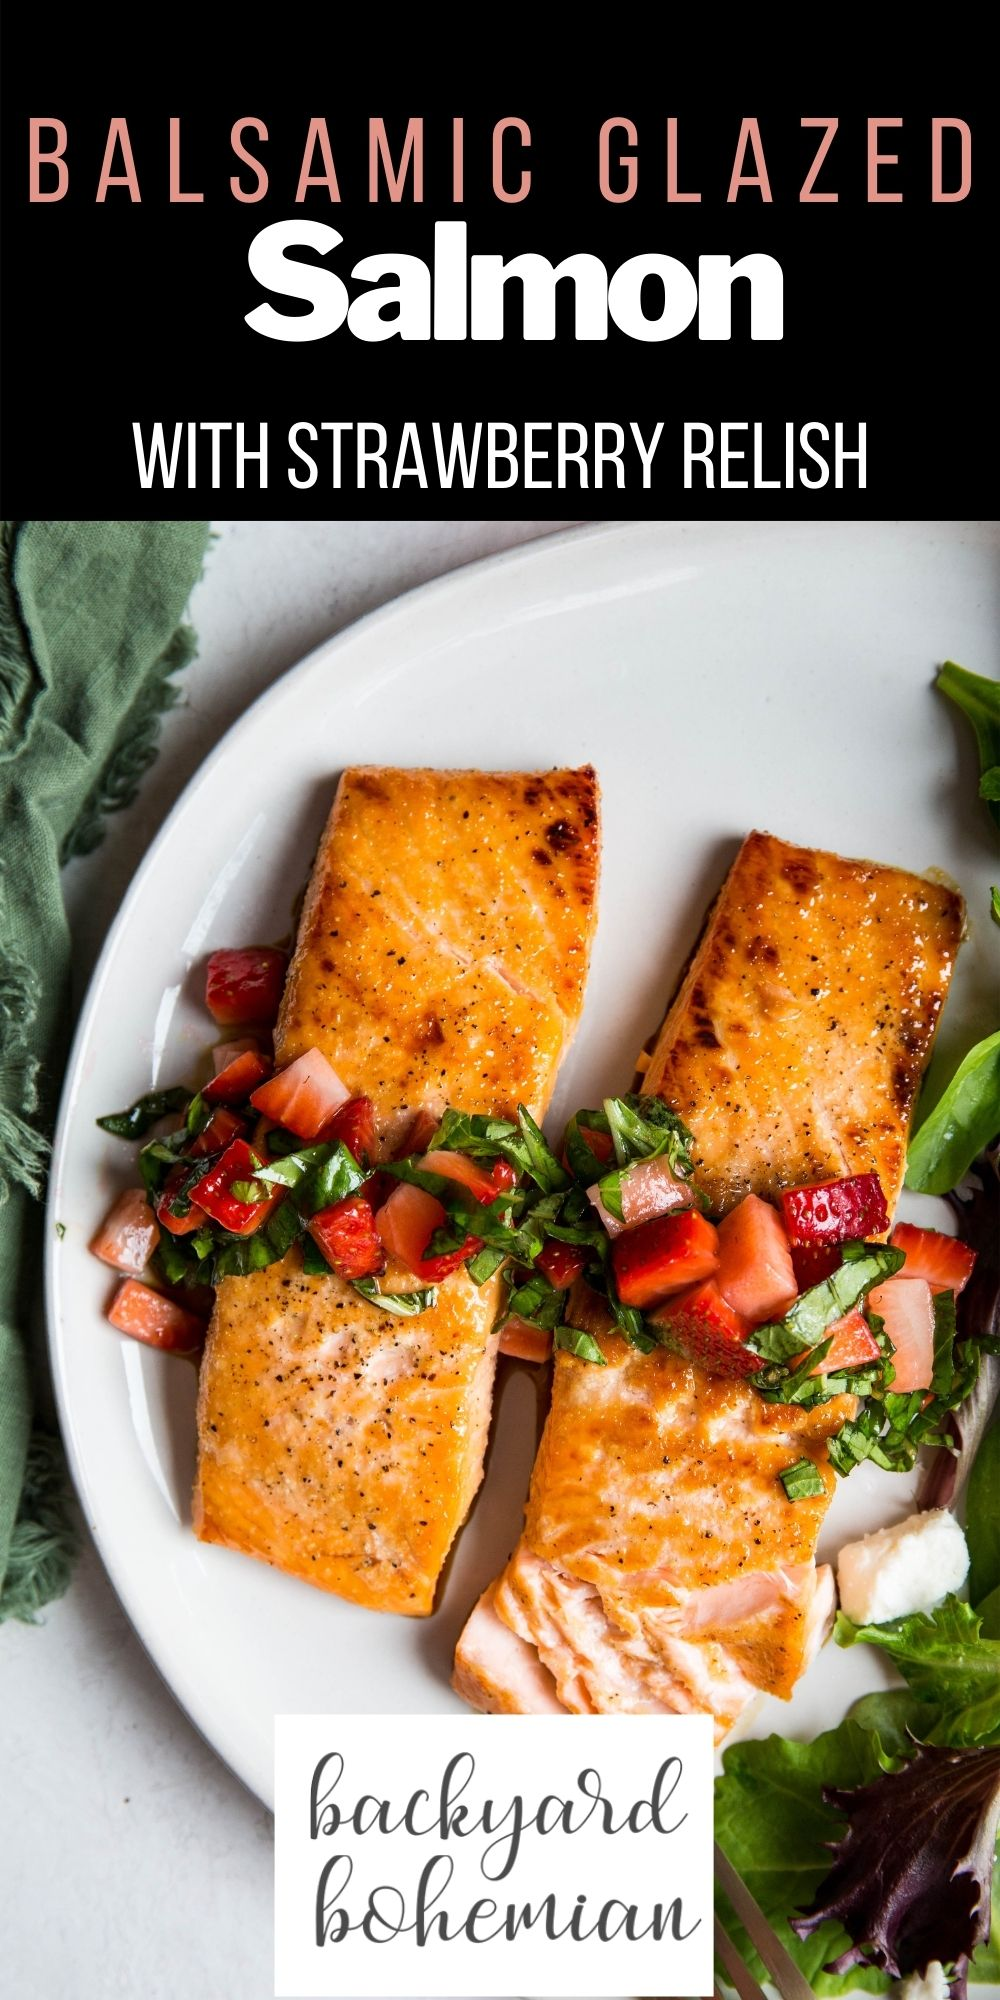 Honey Balsamic Glazed Salmon With Strawberry Relish is packed with fresh flavors and is such an easy 30 minute meal! The salmon filets are perfectly seared to juicy, tender perfection. This easy salmon recipe will have you hooked! via @foodhussy